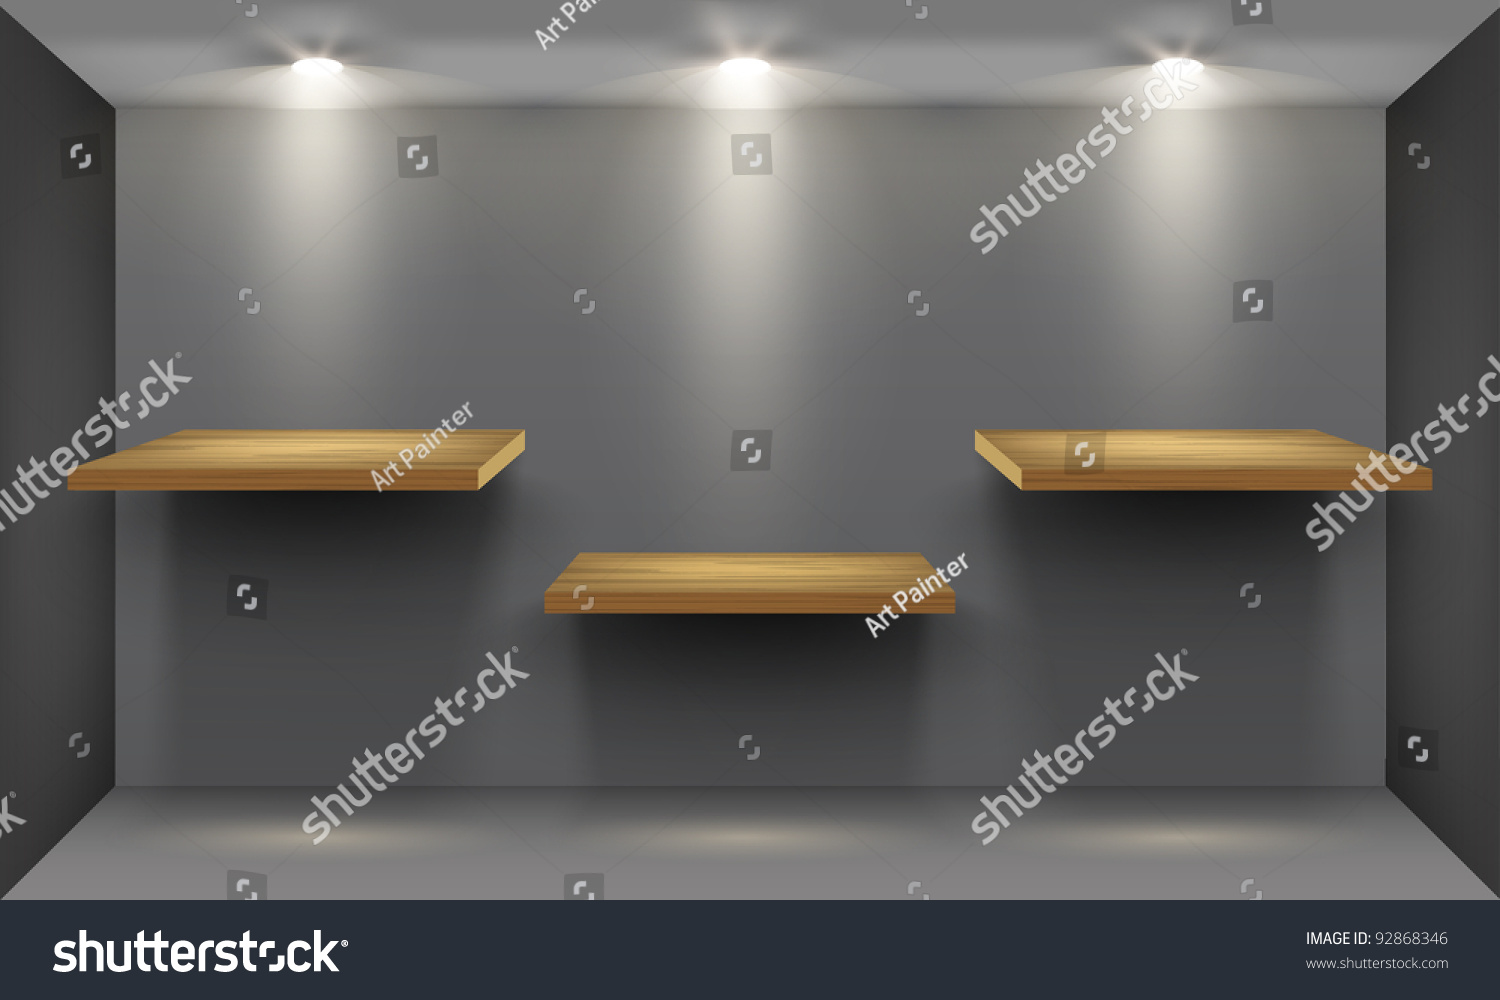 Interior wooden shelves free vector - Room With Three Empty Wooden Shelf Illuminated By Searchlights Part Of Set Vector